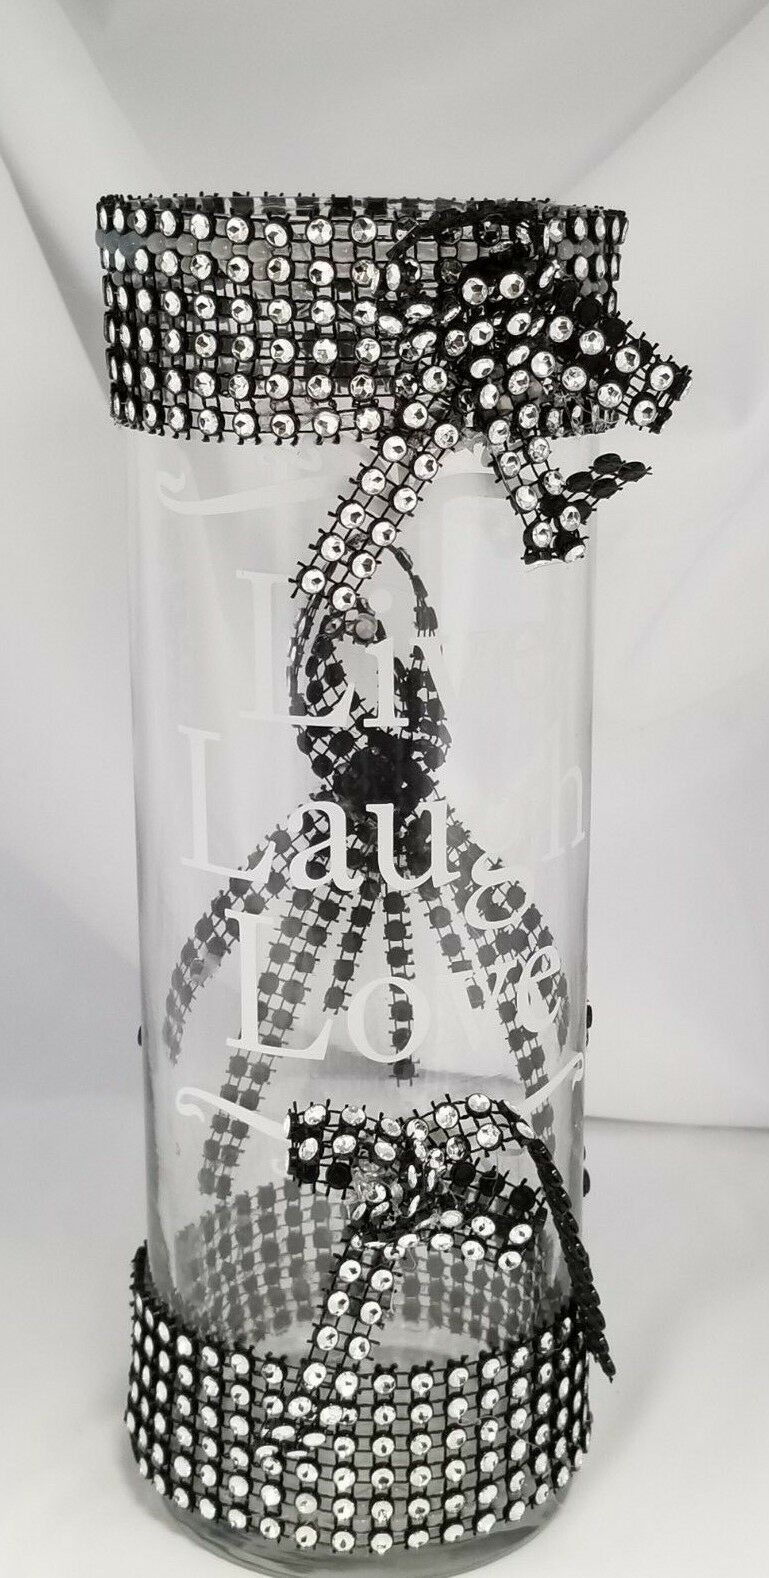 New CBH Bling Bling Centerpiece Handmade 10 inch Glass Vases SHIPPED IN US ONLY